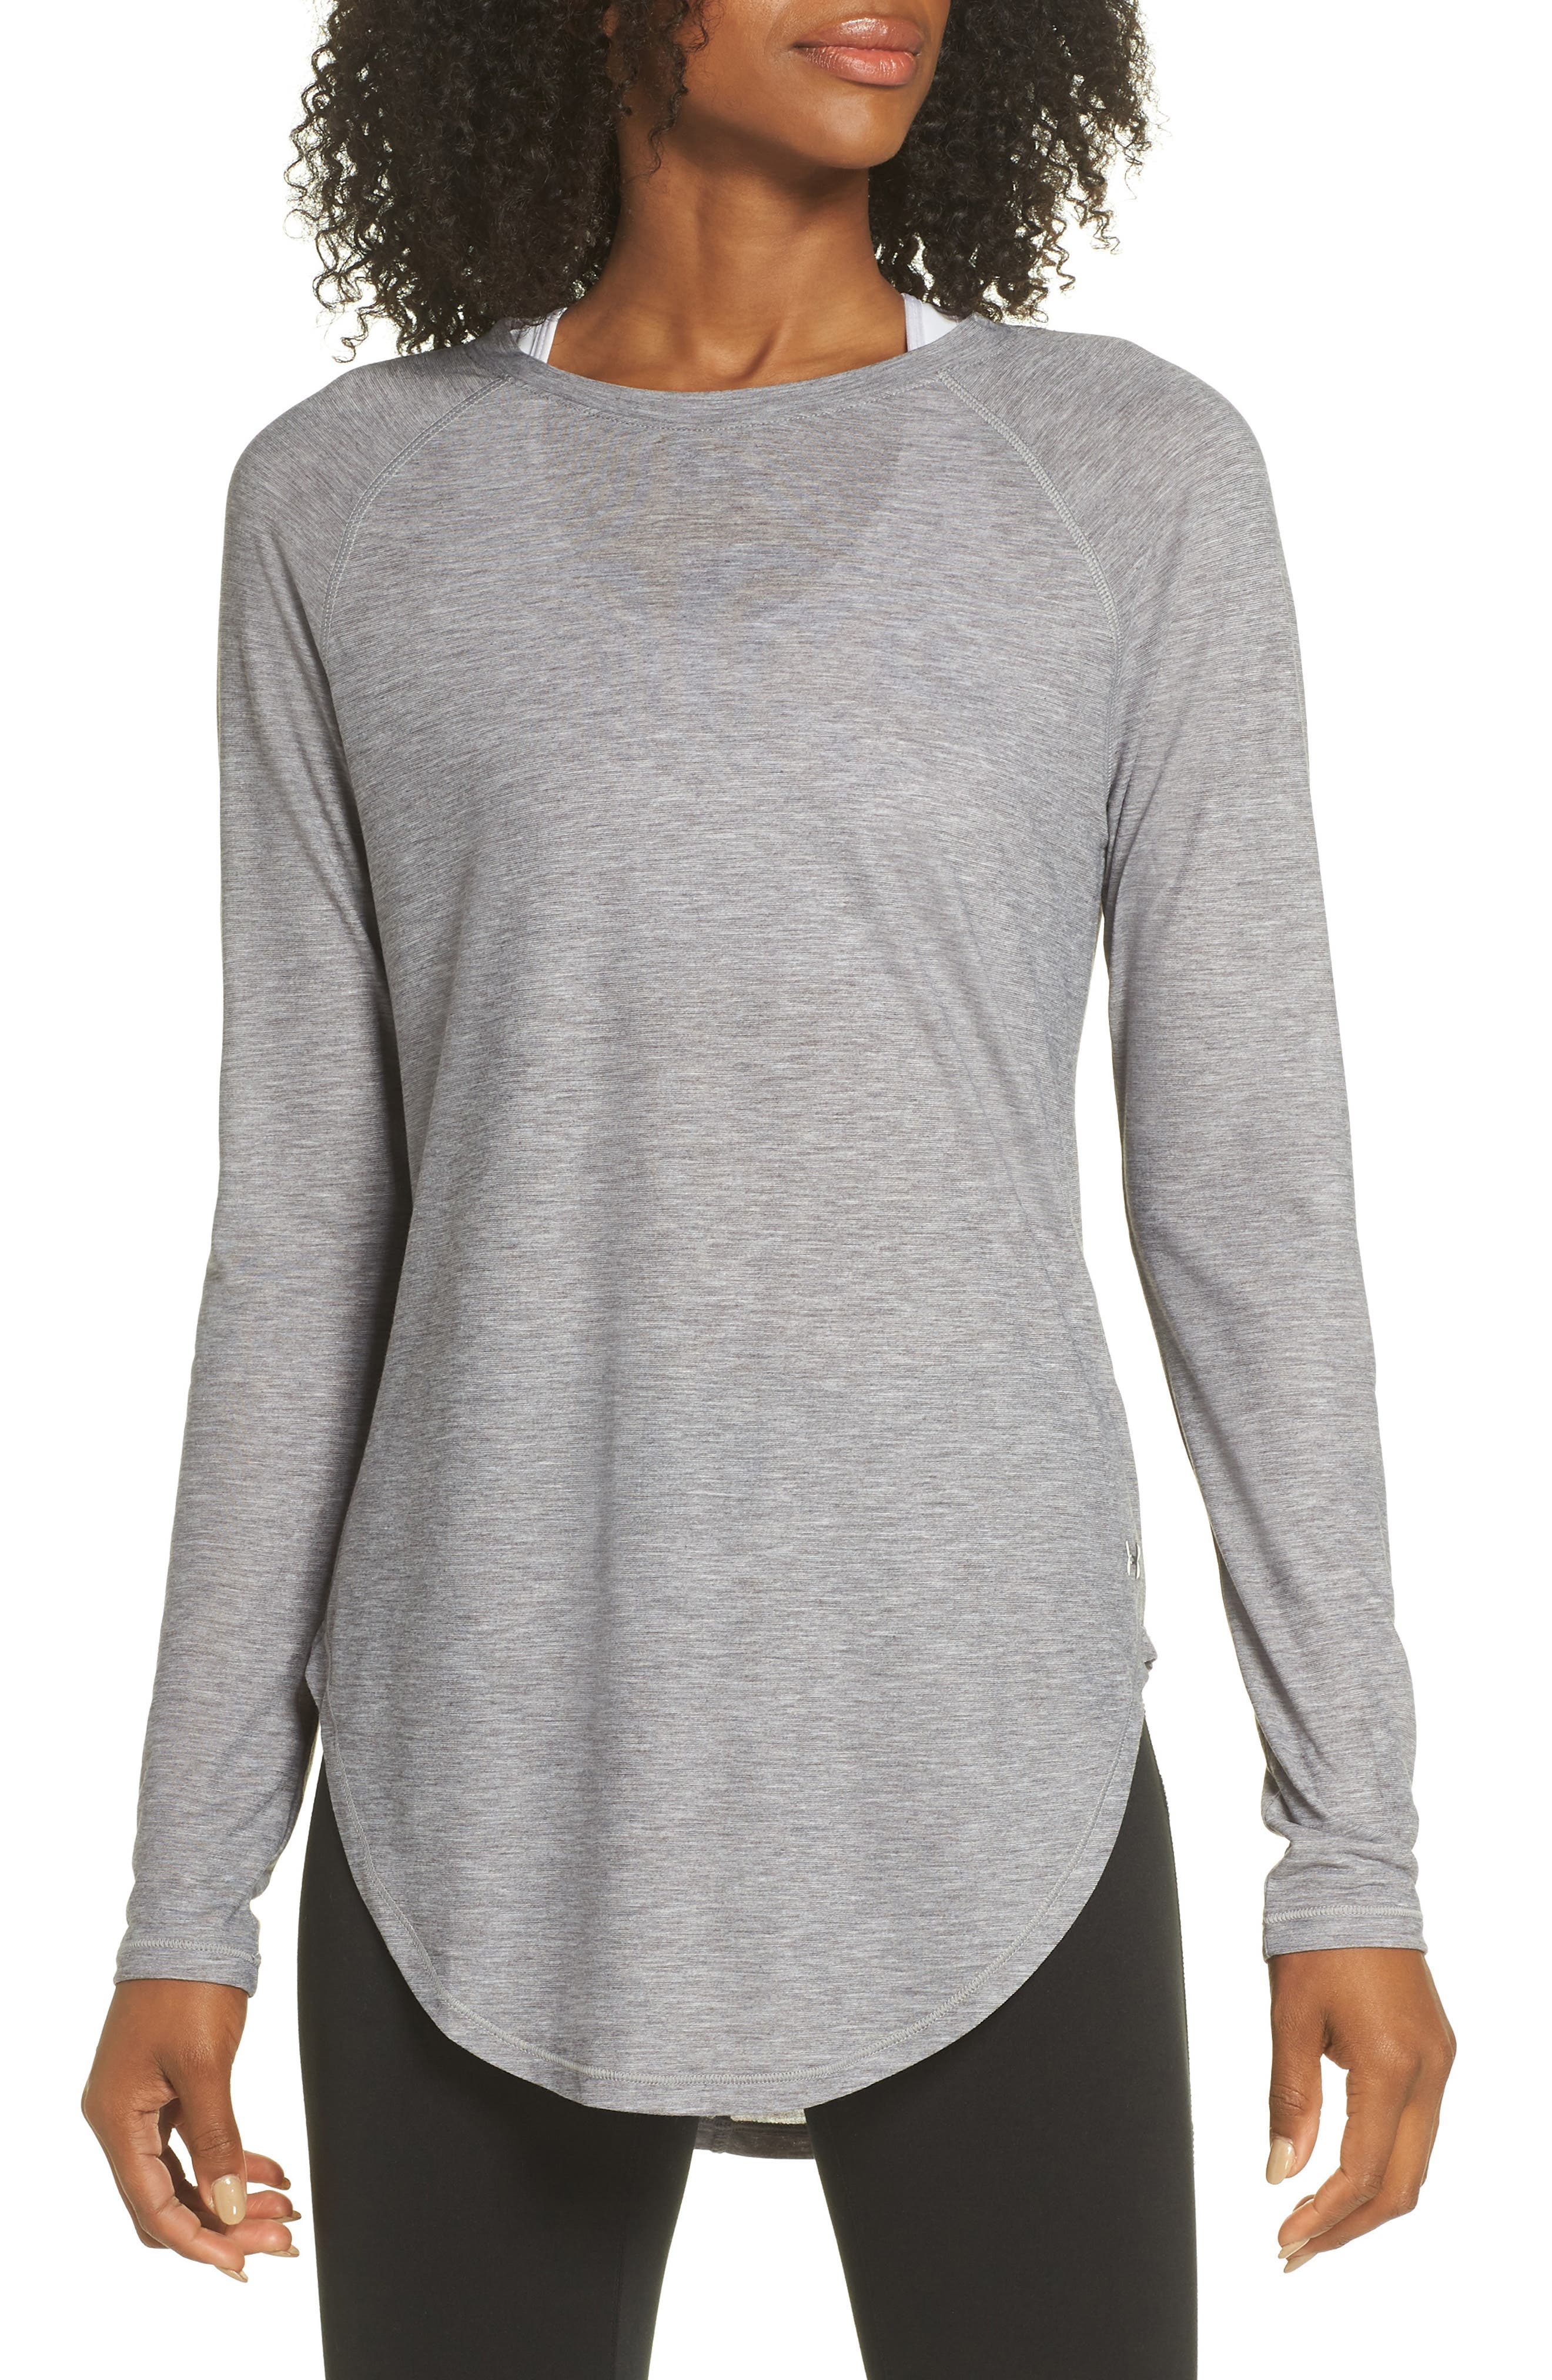 BREATHE TOP from Nordstrom